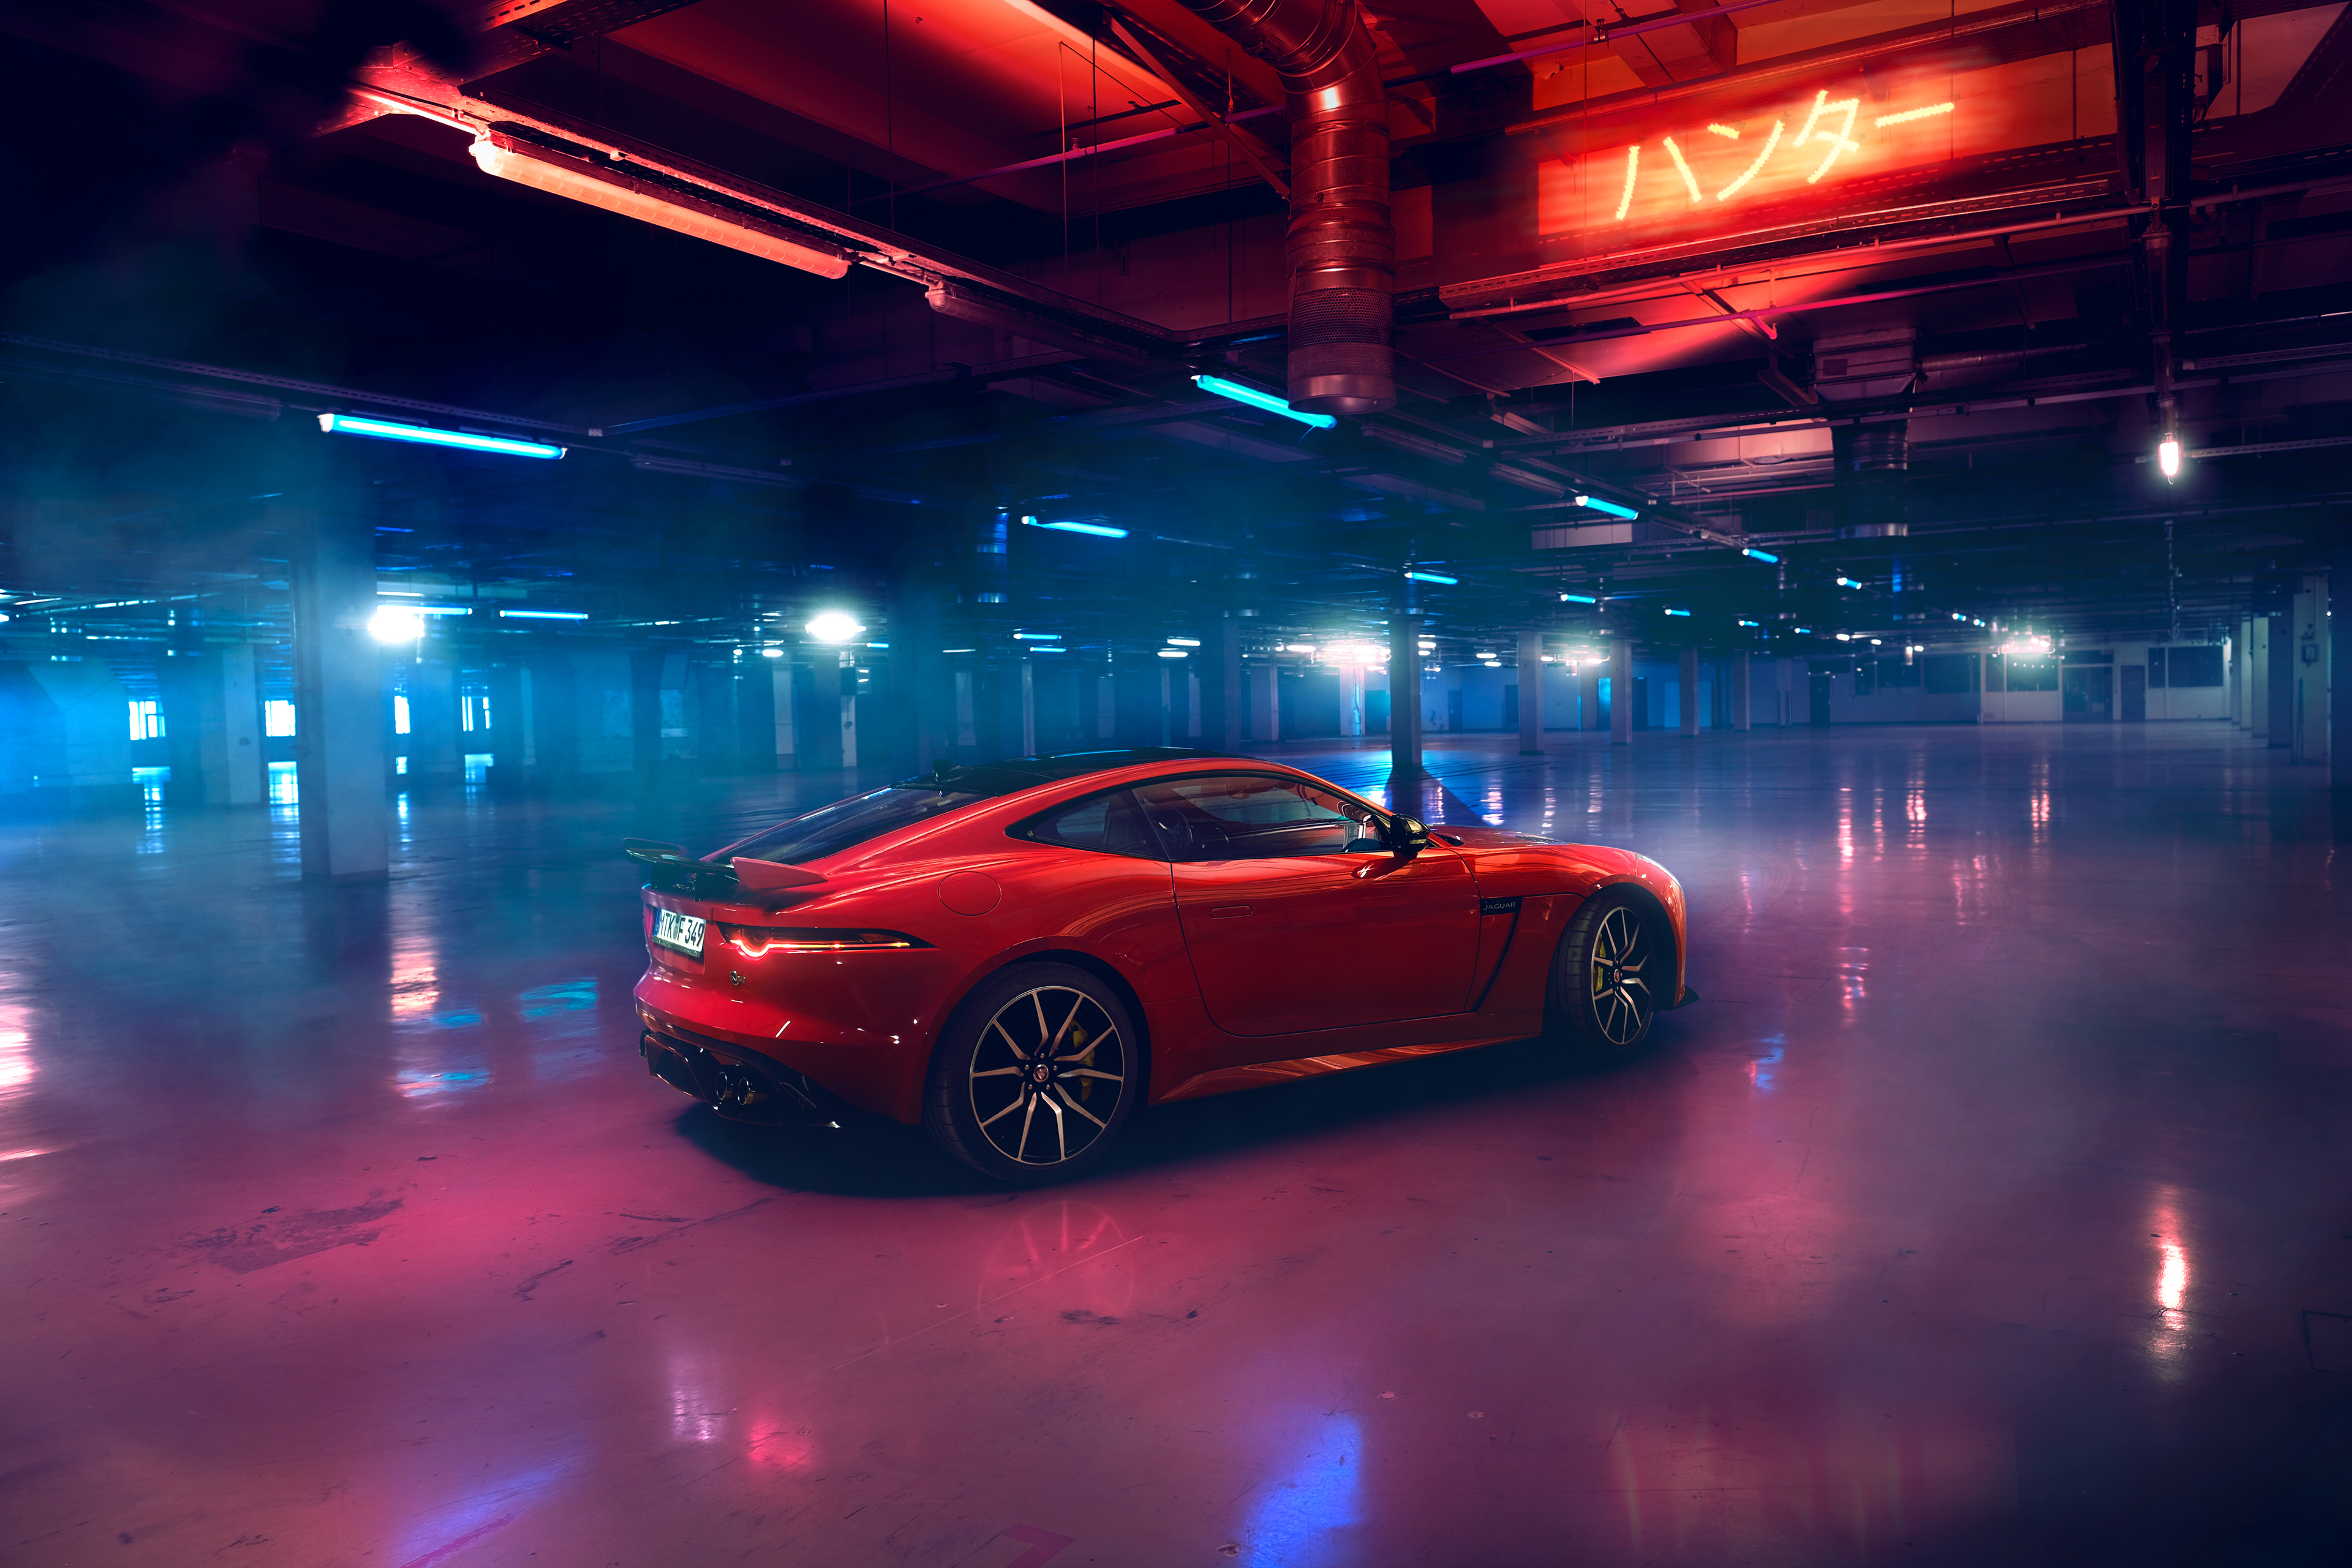 Jaguar F Type 2018 Rear, HD Cars, 4k Wallpapers, Images ...